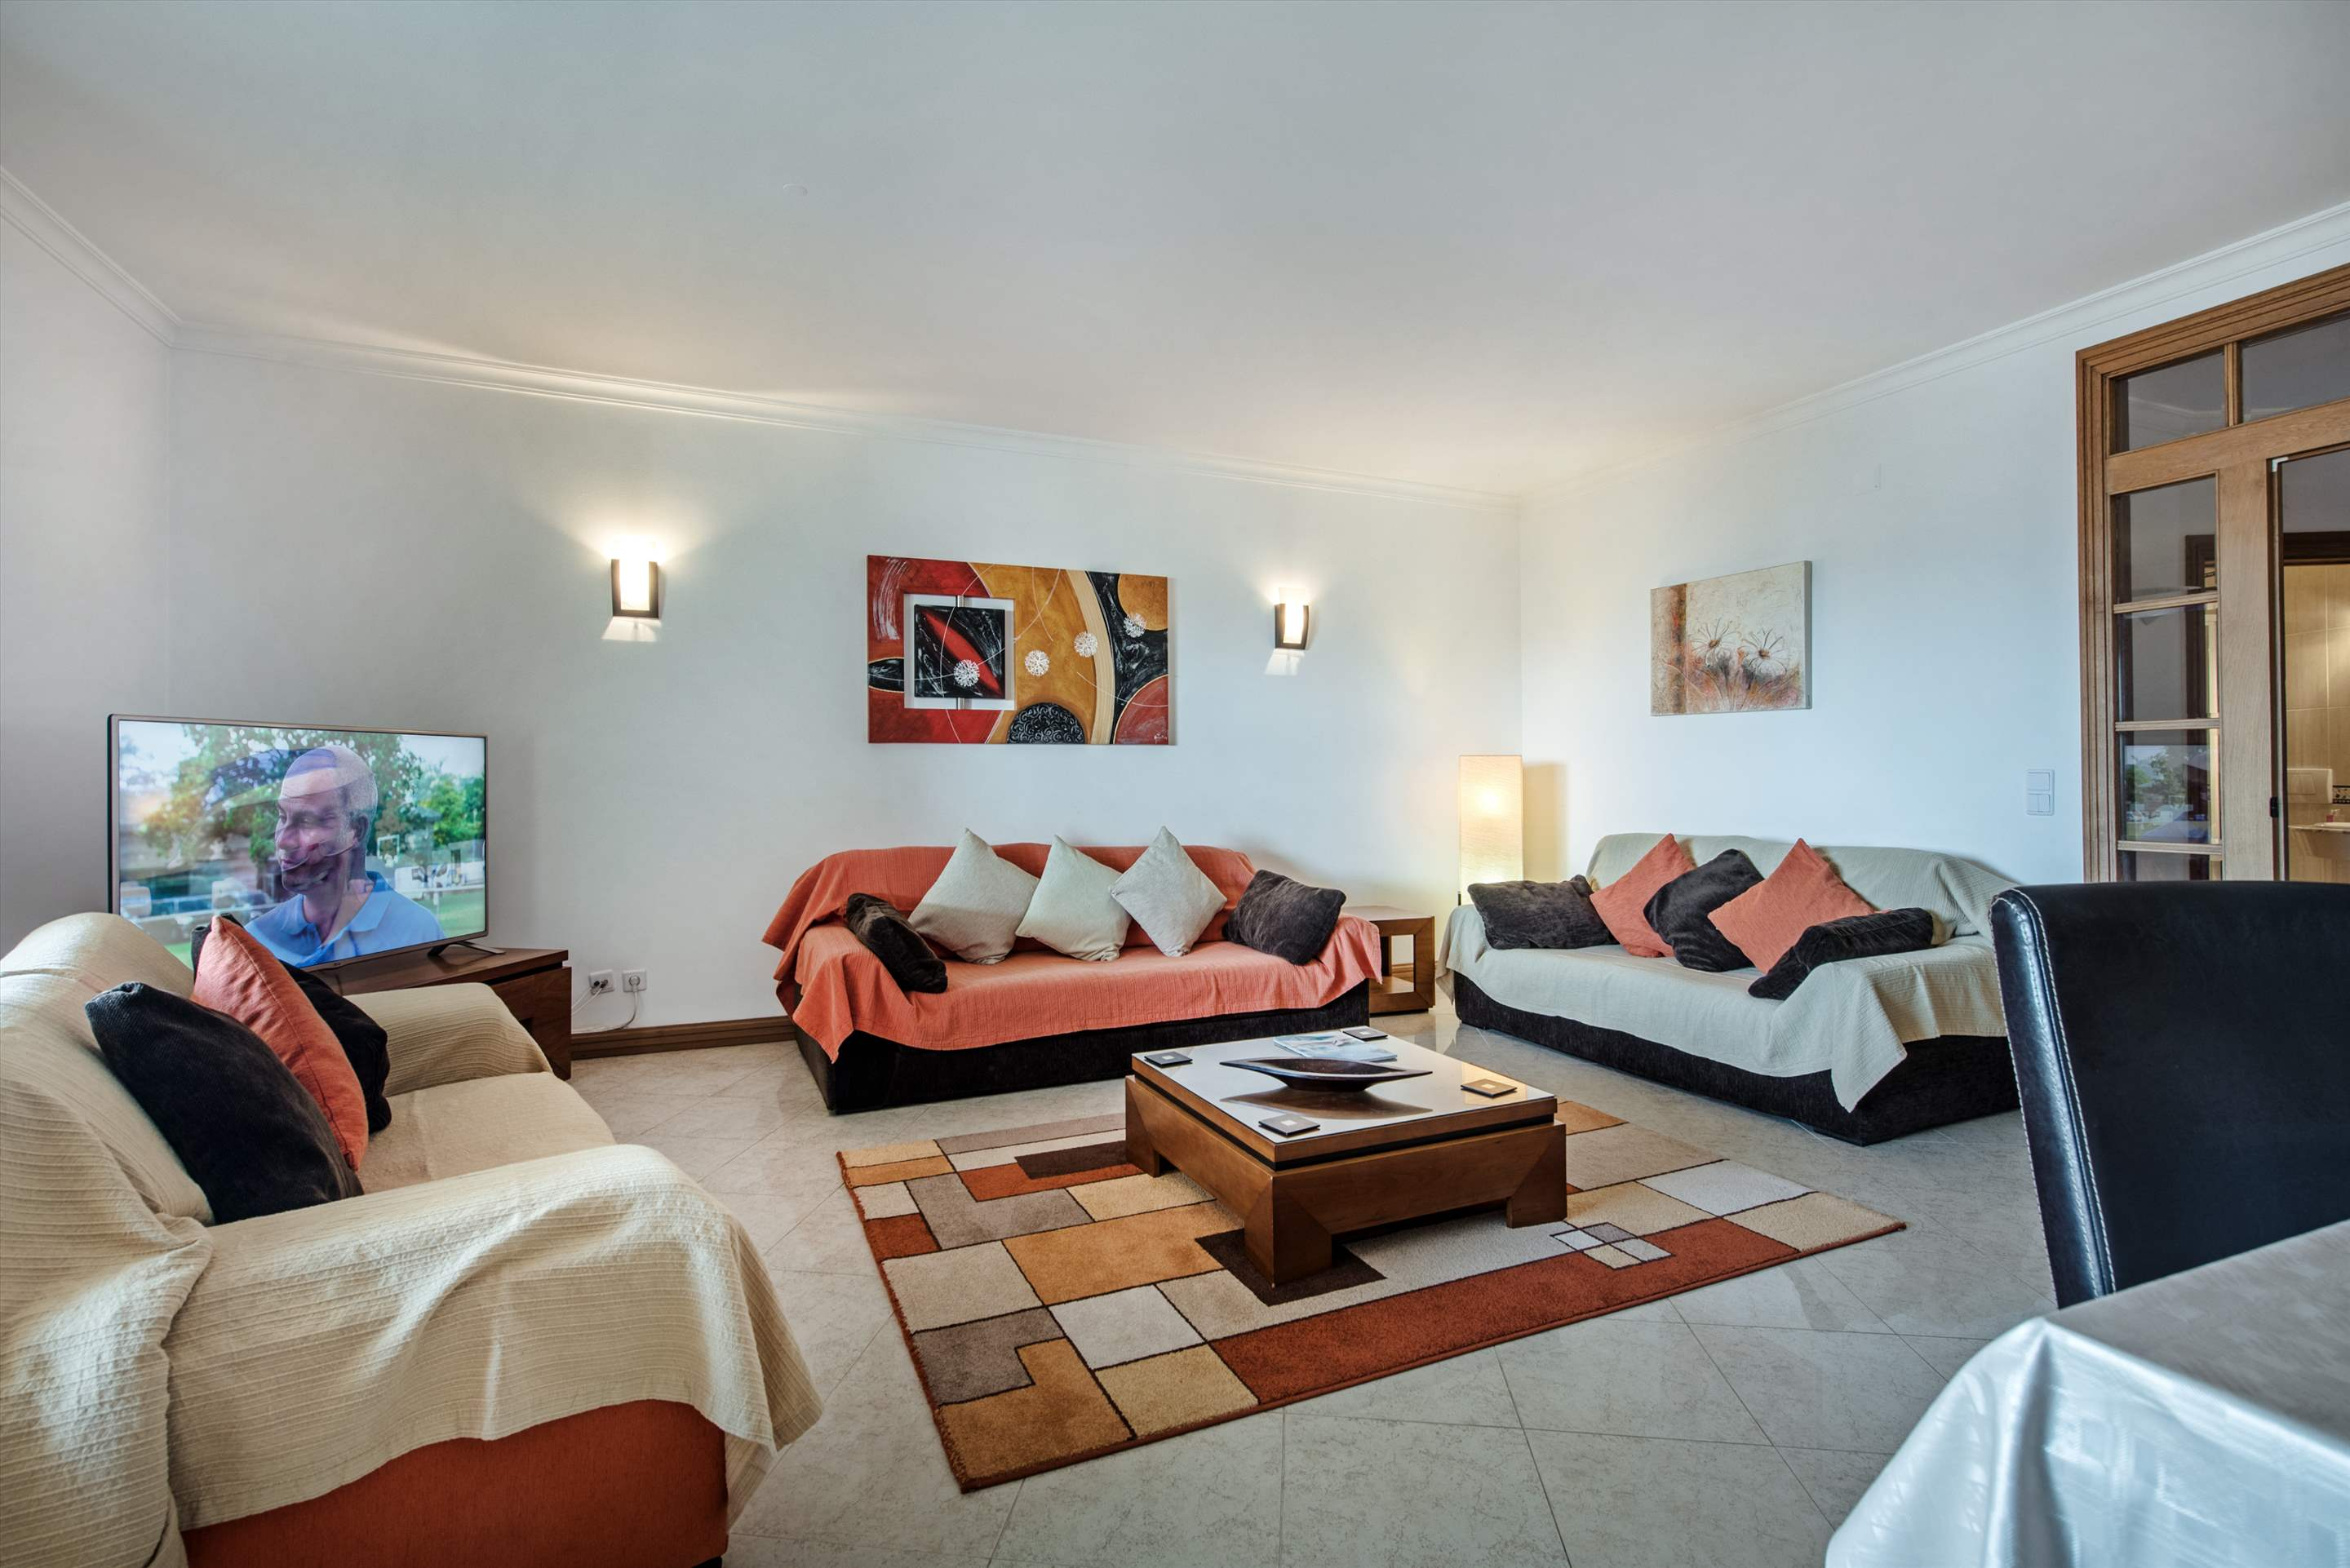 Apt Gale Mar, For 5-6 Persons, 3 bedroom apartment in Gale, Vale da Parra and Guia, Algarve Photo #4